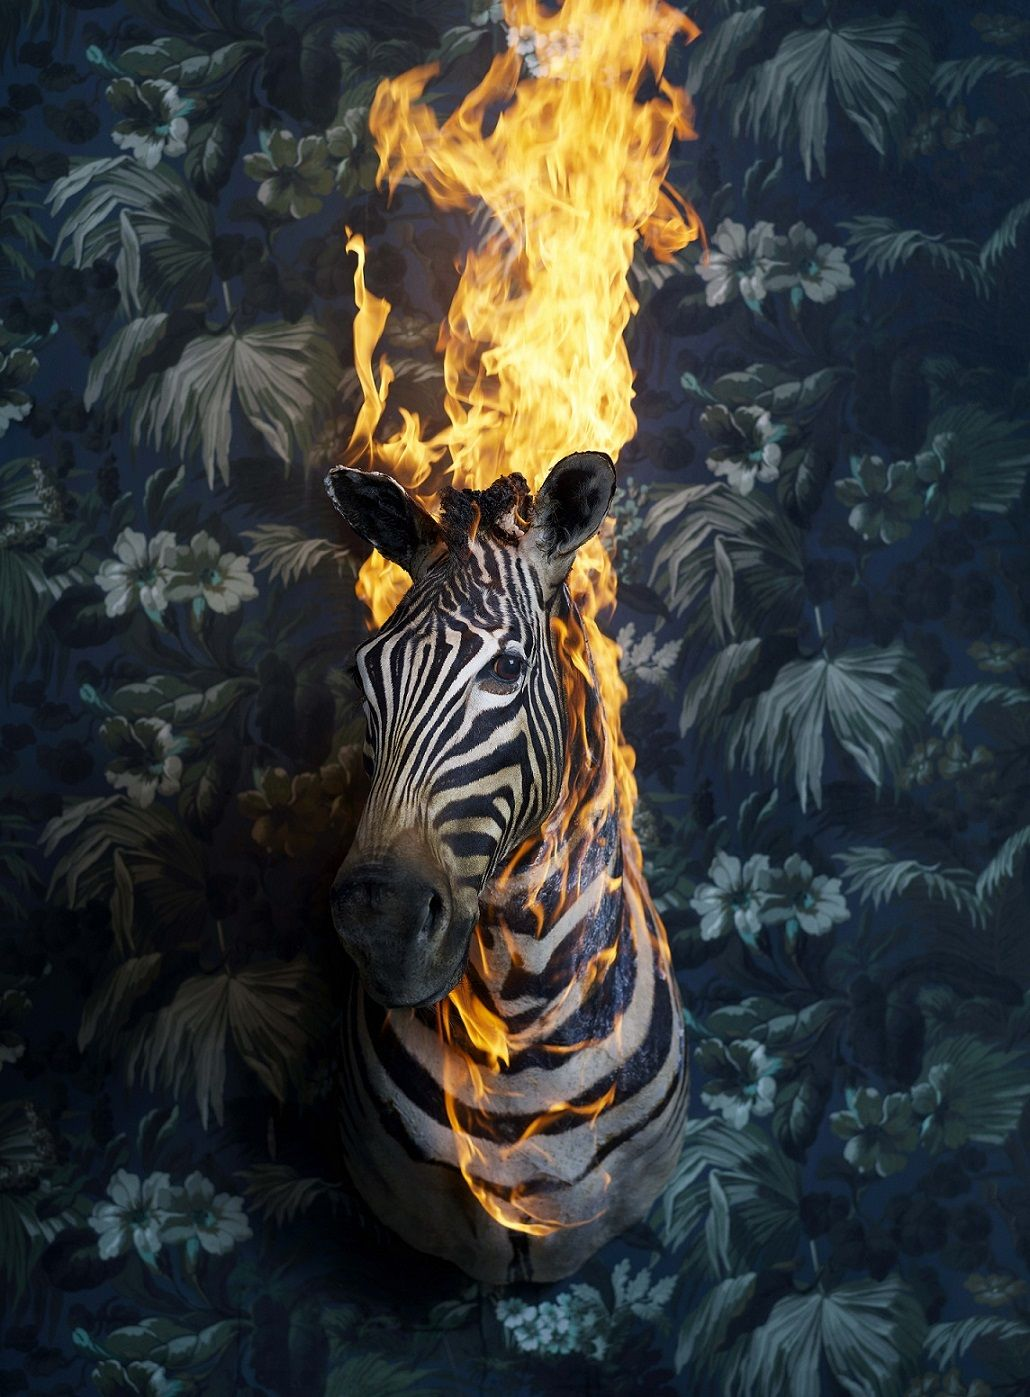 Zebra, série Residence of Impermanence,Christian Houge,Photographie contemporaine